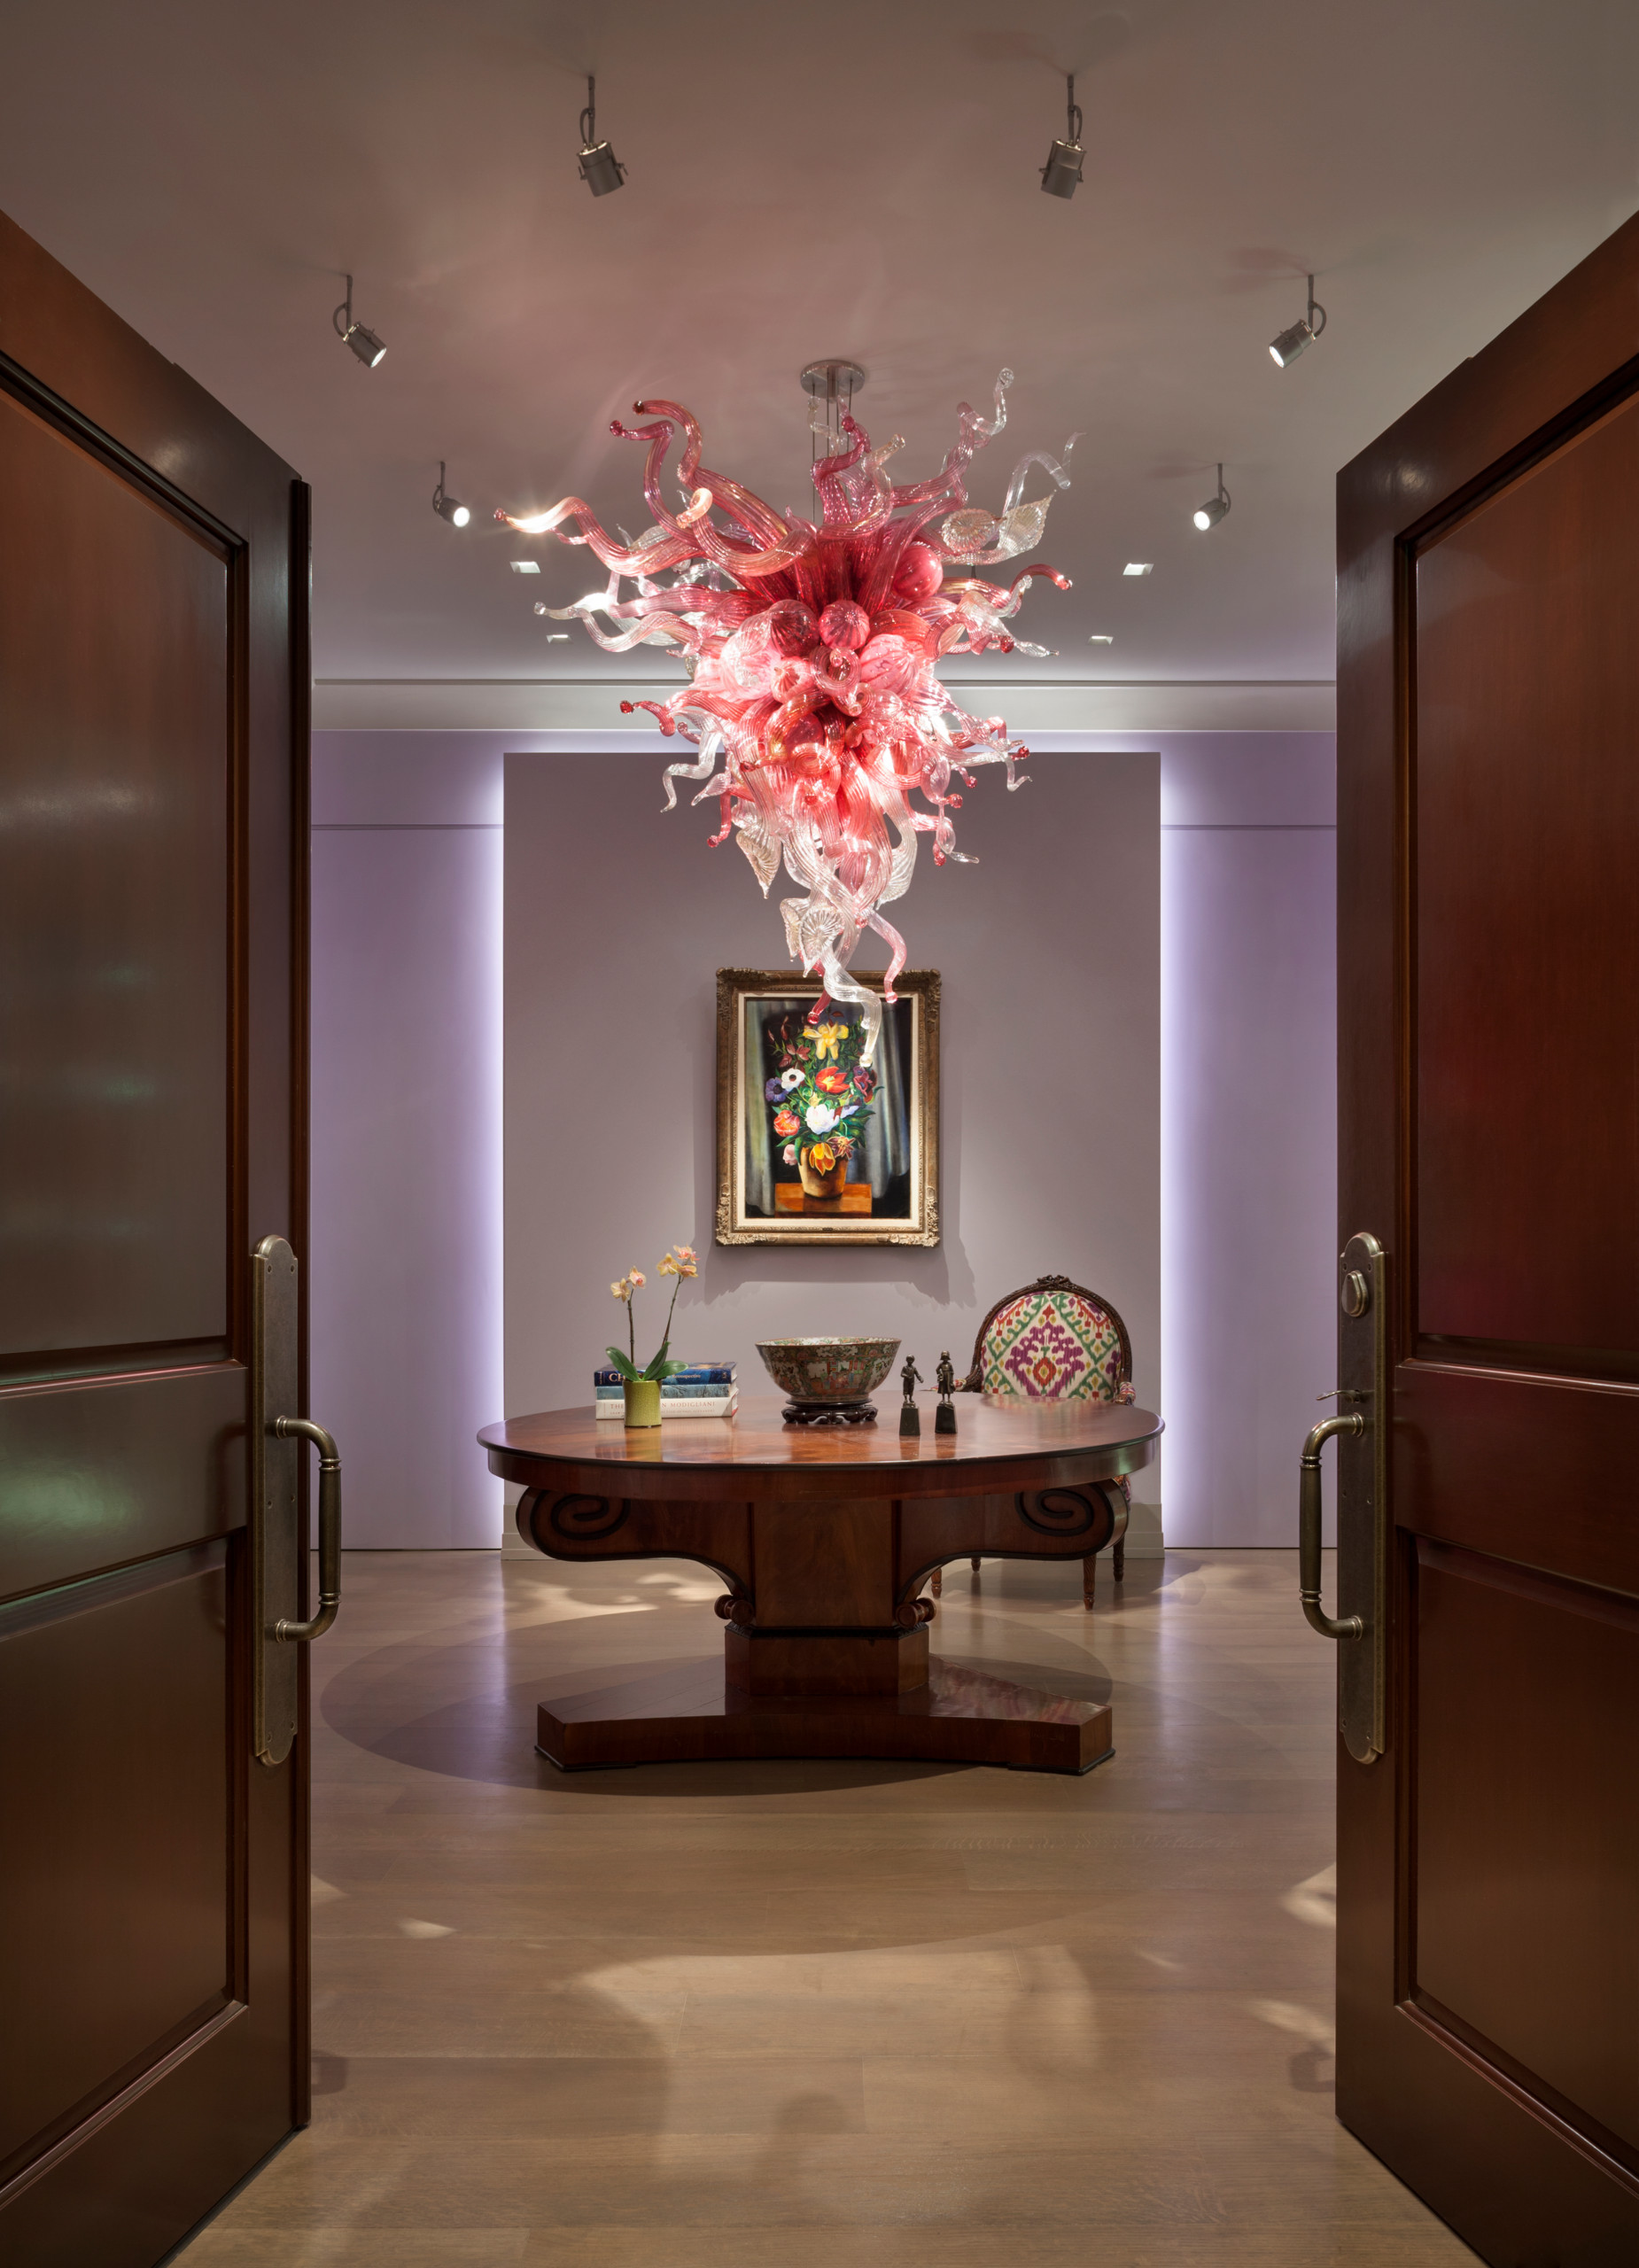 Chihuly Lighting Houzz, Chihuly Like Chandeliers